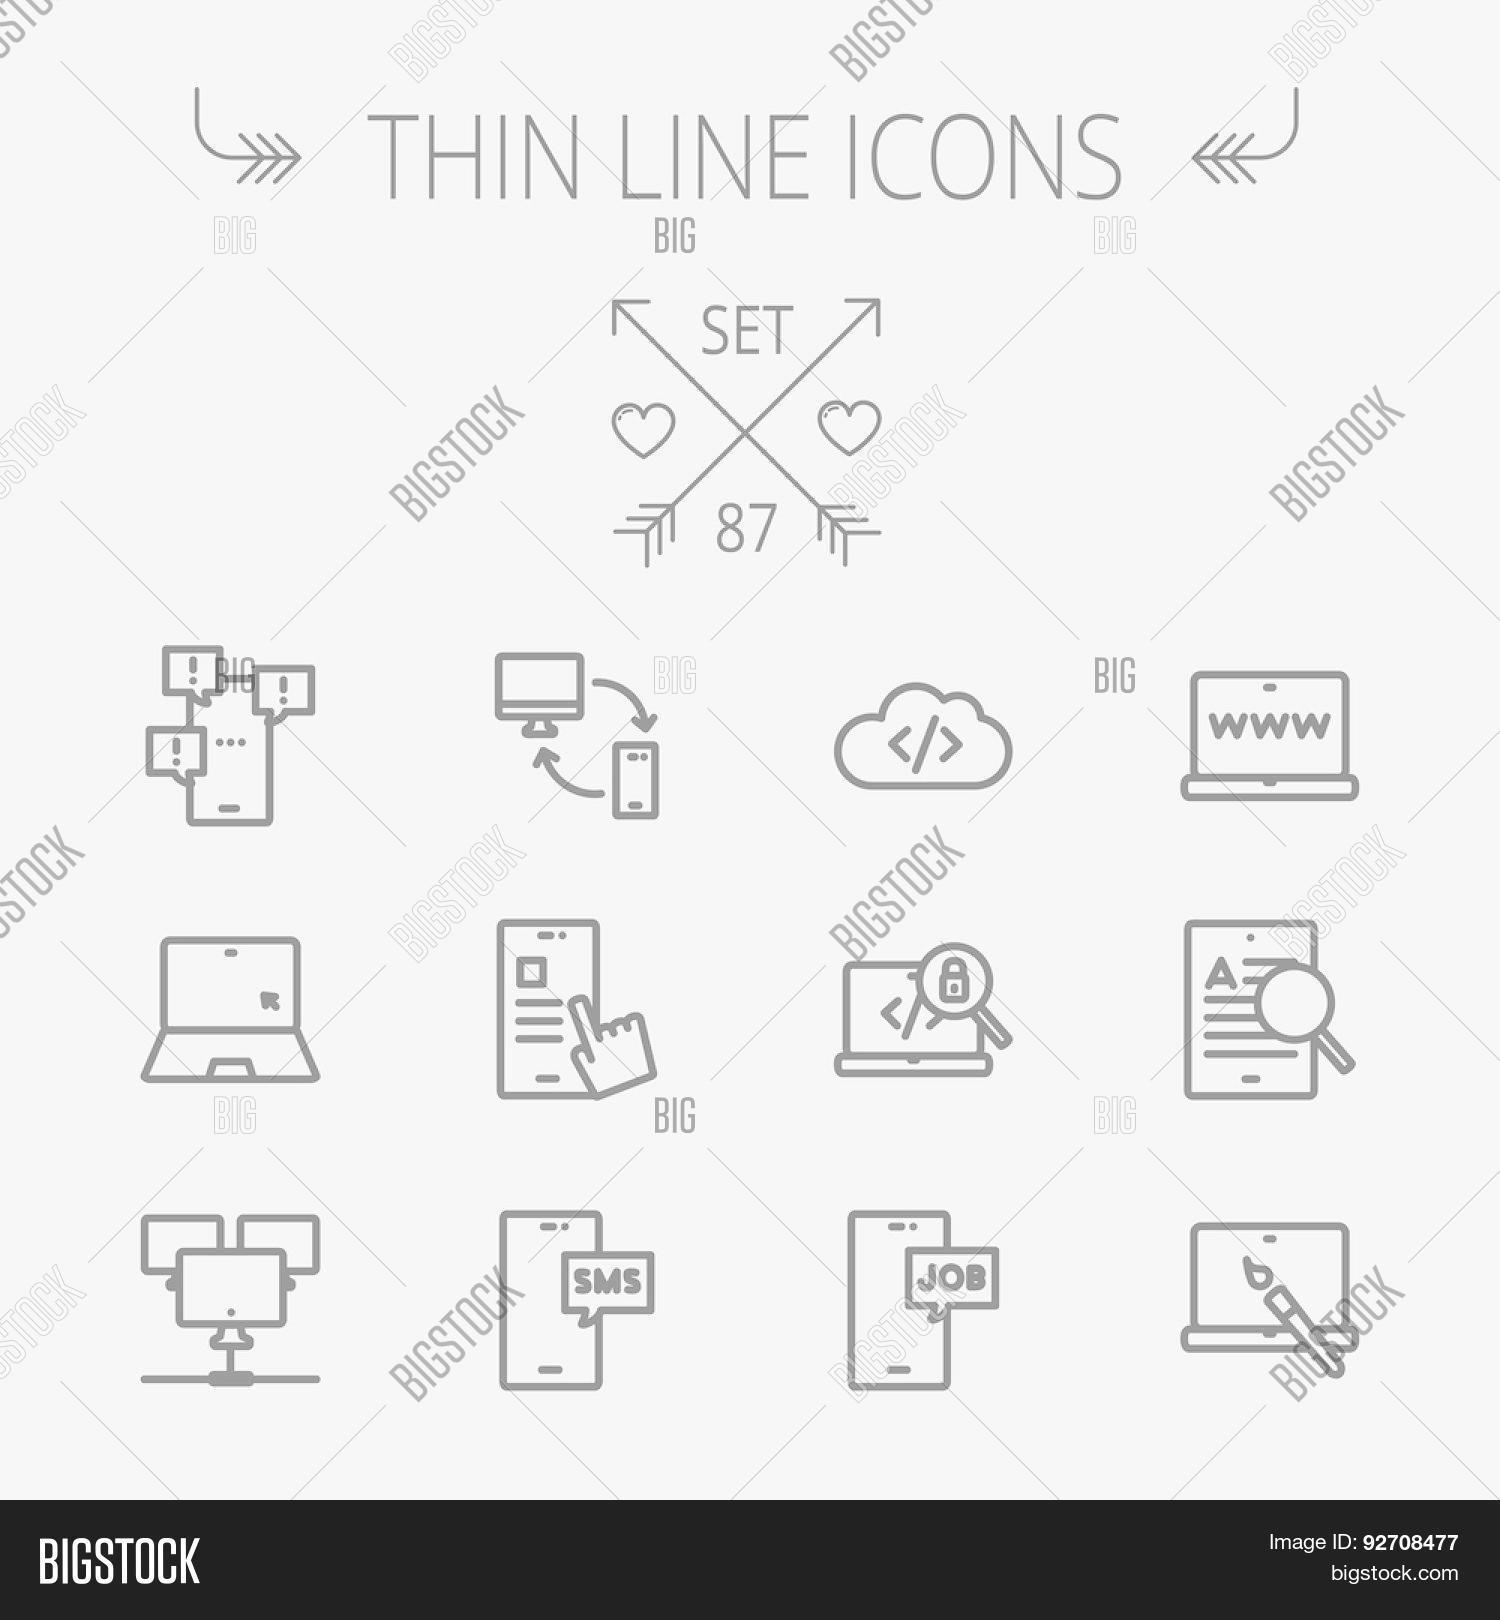 app,app icons,arrow,arrows vector,background design,backgrounds,backgrounds vector,background vector,browser,business,business backgrounds,business icons,business icon set,business vector,calendar,calendar icon,calendar vector,communication,computer,computer programming,computer technology,computer user,concept,concept design,connection,contemporary,design,design background,design icon,design icons,design vector,ecommerce,ecommerce icons,element,email,flat,grey background,icon,icons business,icon set,icons web,illustration,information,information icon,information technology,internet,internet icon,internet icons,isolated,laptop,laptop screen,lights background,line,linear,lines background,lock,lock icon,magnifying glass,mail,mail icon,media,message,messaging,minimal,mobile,mobile app,mobile icon,mobile icons,mobile technology,music,music background,music icon,music vector,network,object,outline,presentation,presentation background,program,screen,set,site,symbol,tablet,talk,technology,technology background,technology backgrounds,technology icon,technology vector,thin,user,user icon,vector,vector background,vector design,vector designs,vector lines,web,web background,web design,web design icons,web elements,web icons,web site,wireless,wireless network